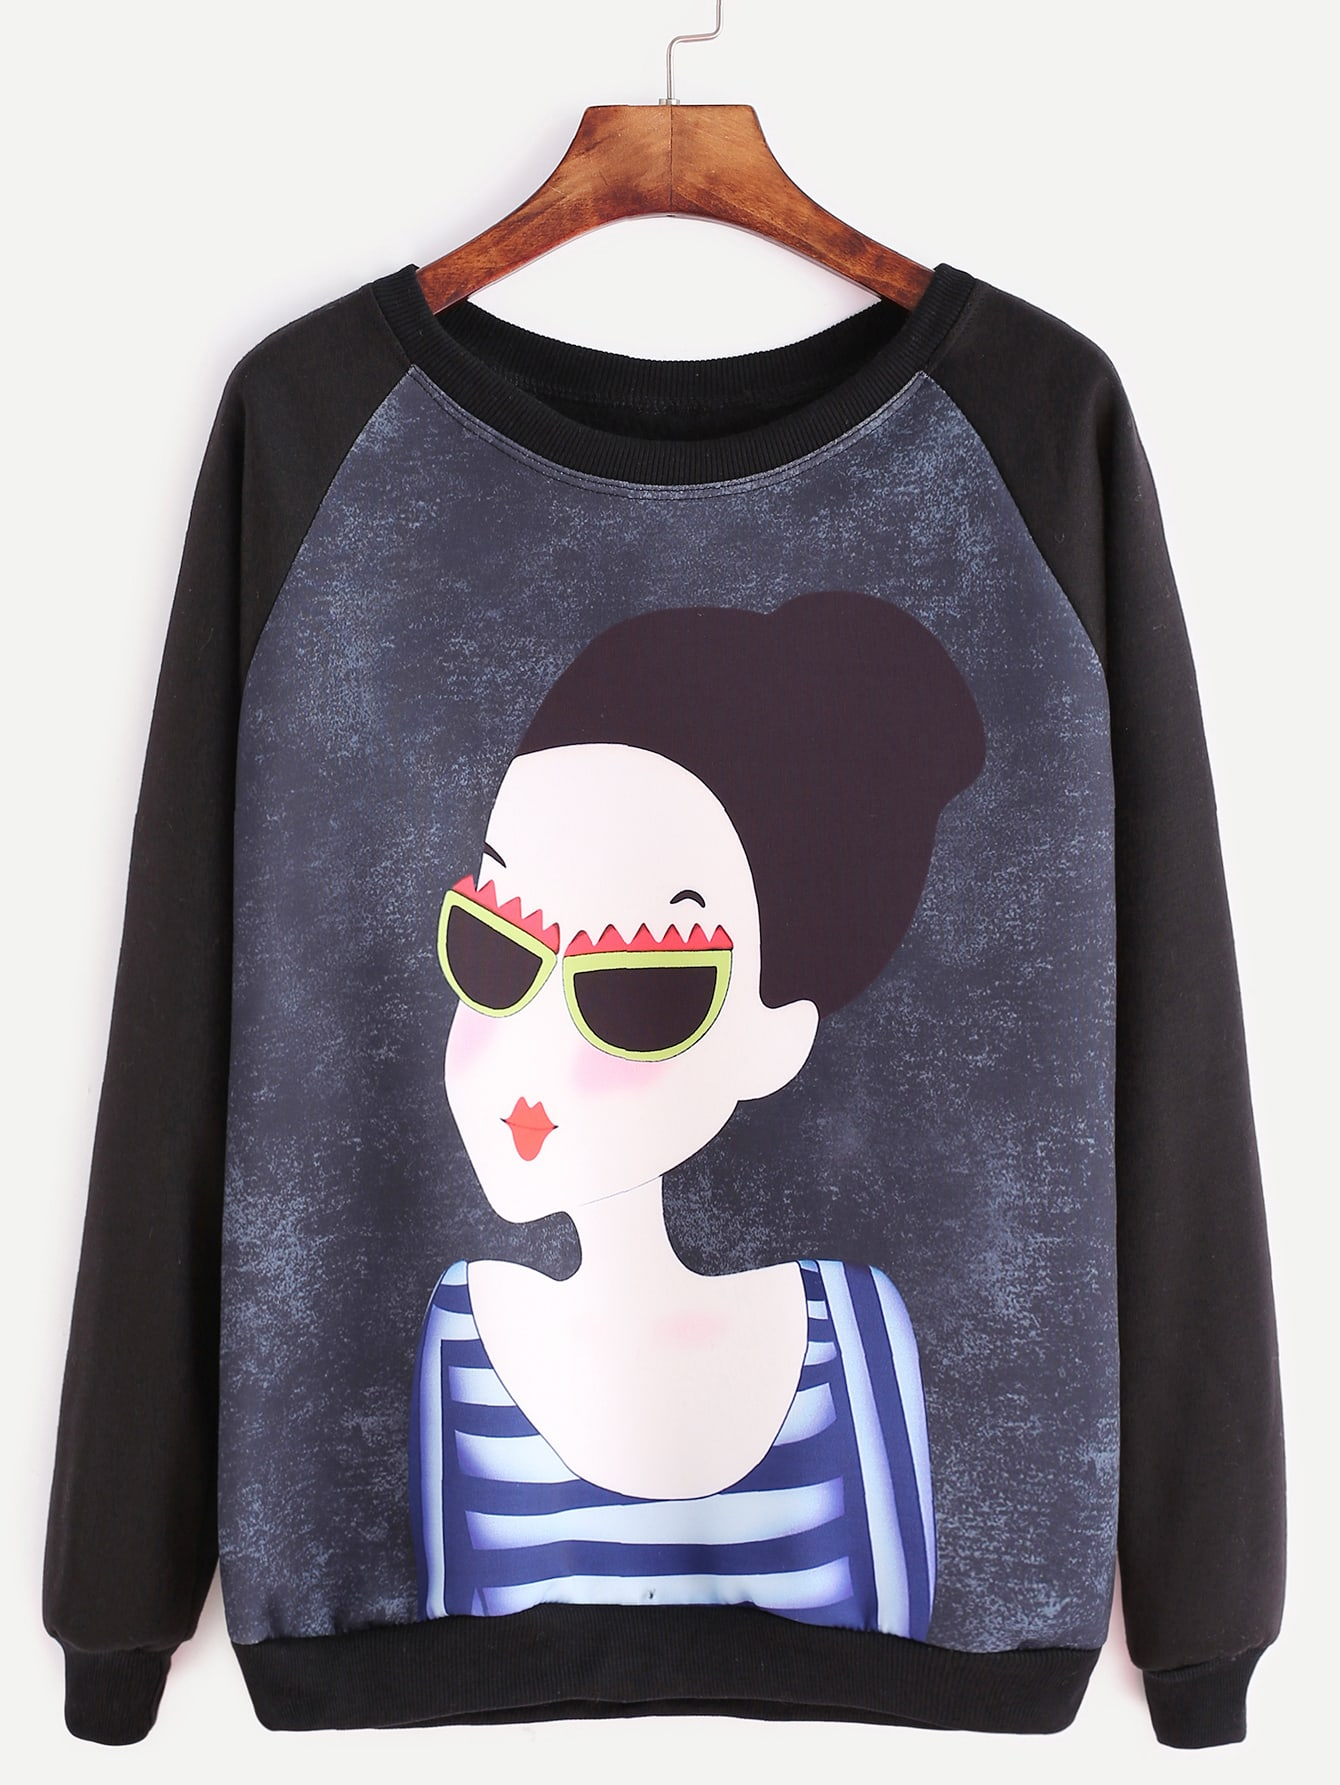 Black Raglan Sleeve Girl Print SweatshirtBlack Raglan Sleeve Girl Print Sweatshirt<br><br>color: Black<br>size: one-size